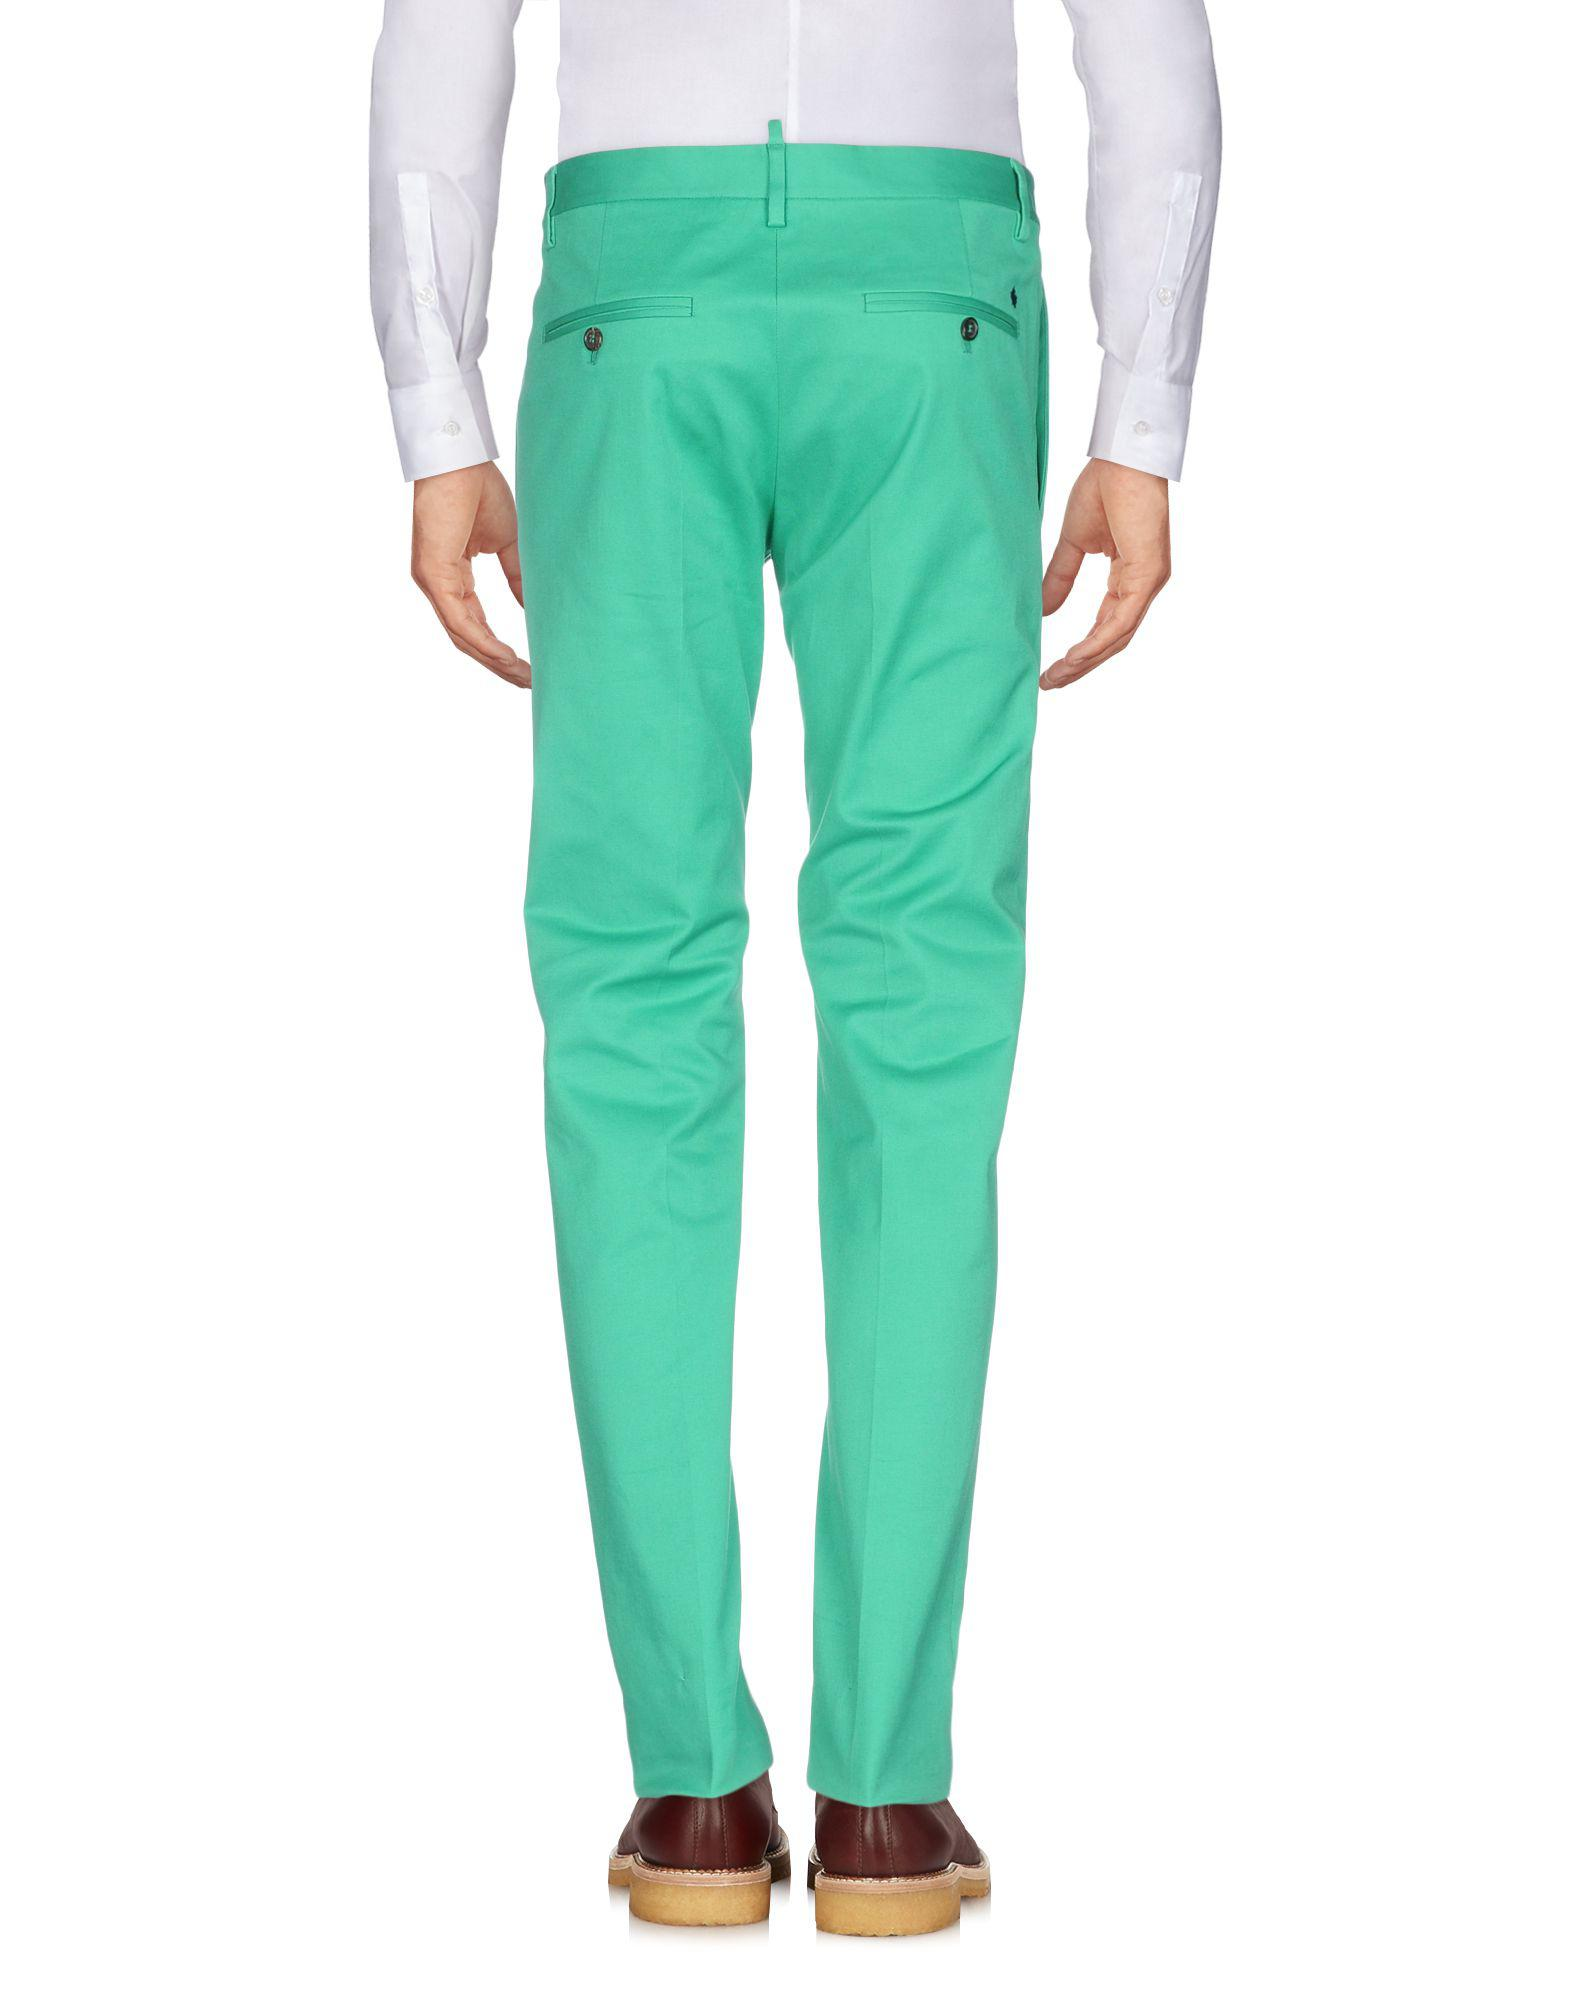 DSquared² Cotton Casual Pants in Green for Men